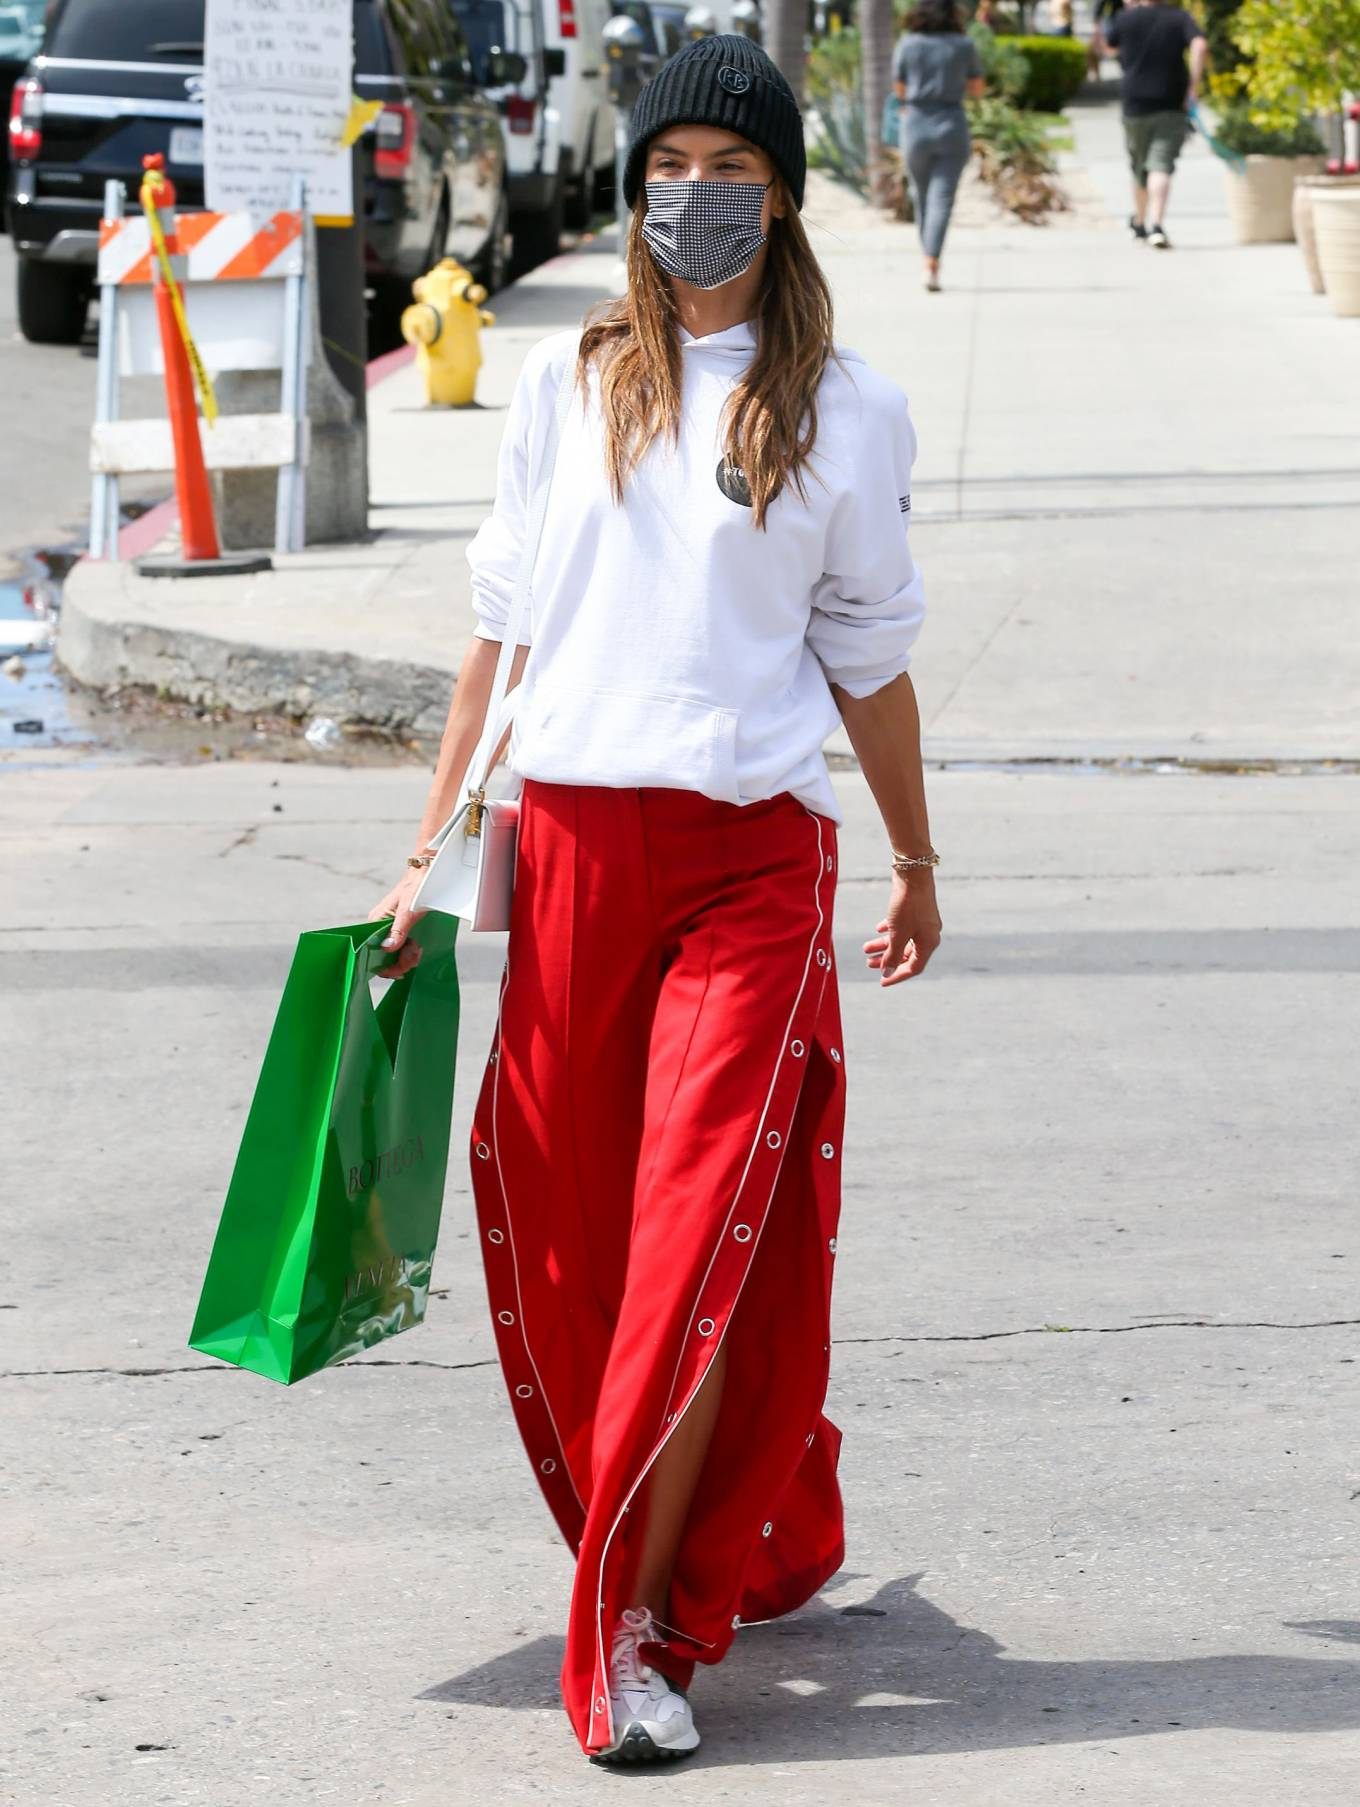 Alessandra Ambrosio, New Balance sneakers, white and black sneakers, white Jacquemus shoulder bag, oversized white hoodie, round, lace-up, flat heel, red trousers, brand logo. Alessandra Ambrosio wearing brand logo white and black lace-up sneakers by New Balance with flat heel